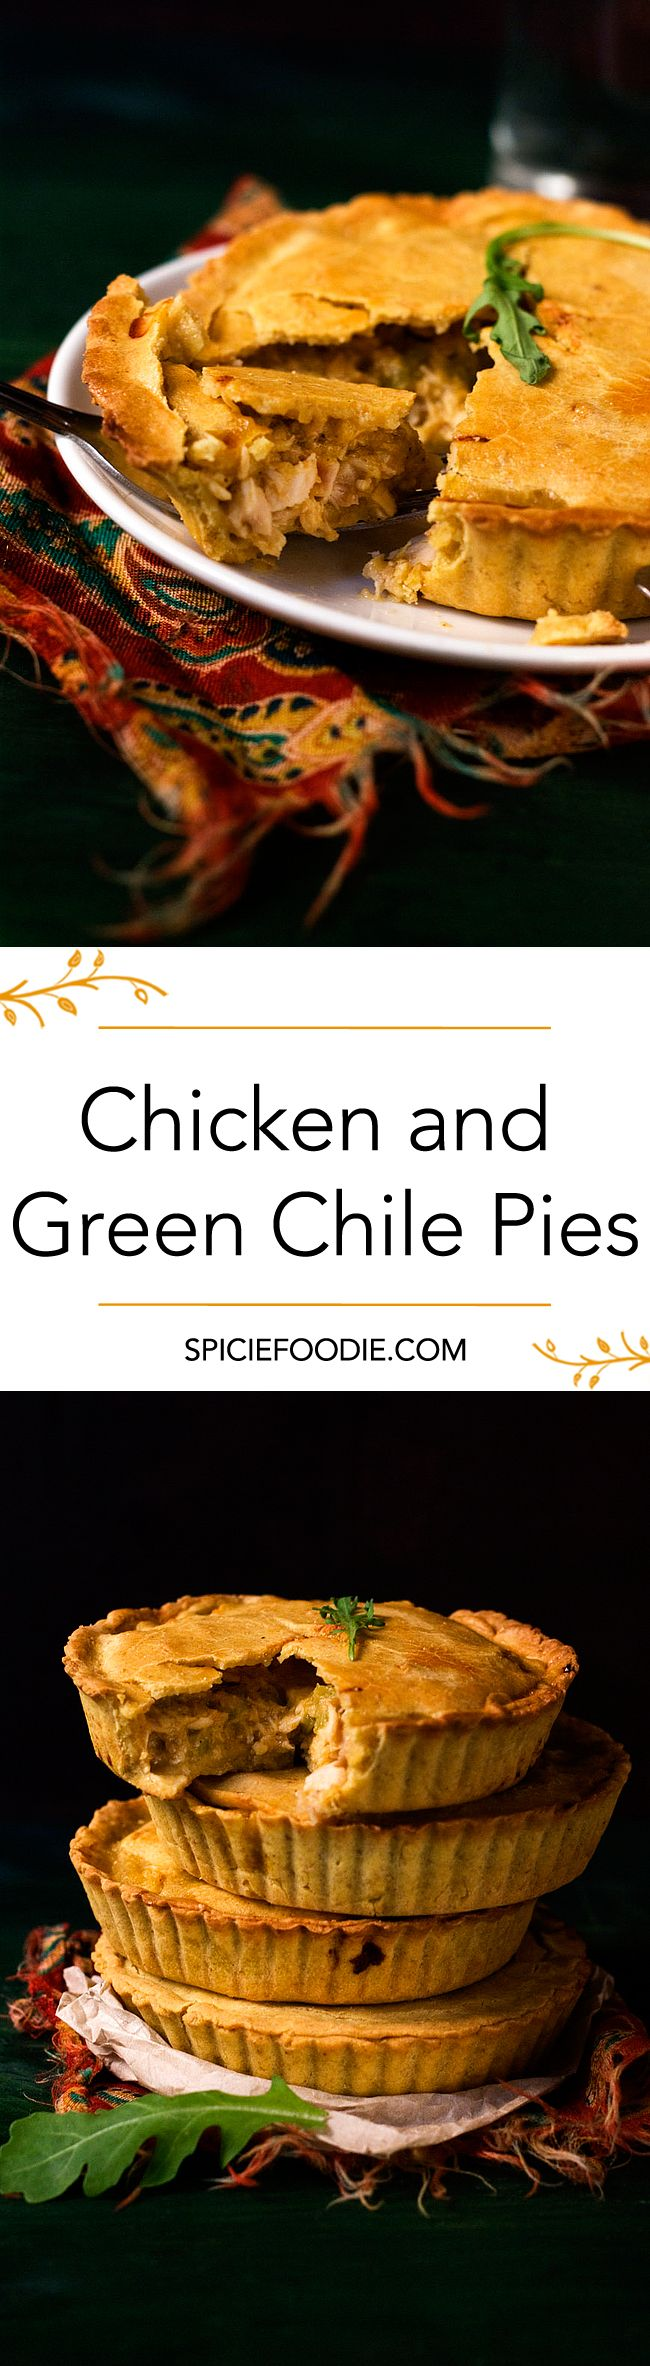 Chicken and Green Chile Pies Made with Corn and Oat Flour Pie Crust  | #Mexican #fusion #chicken #potpie #jalapeno